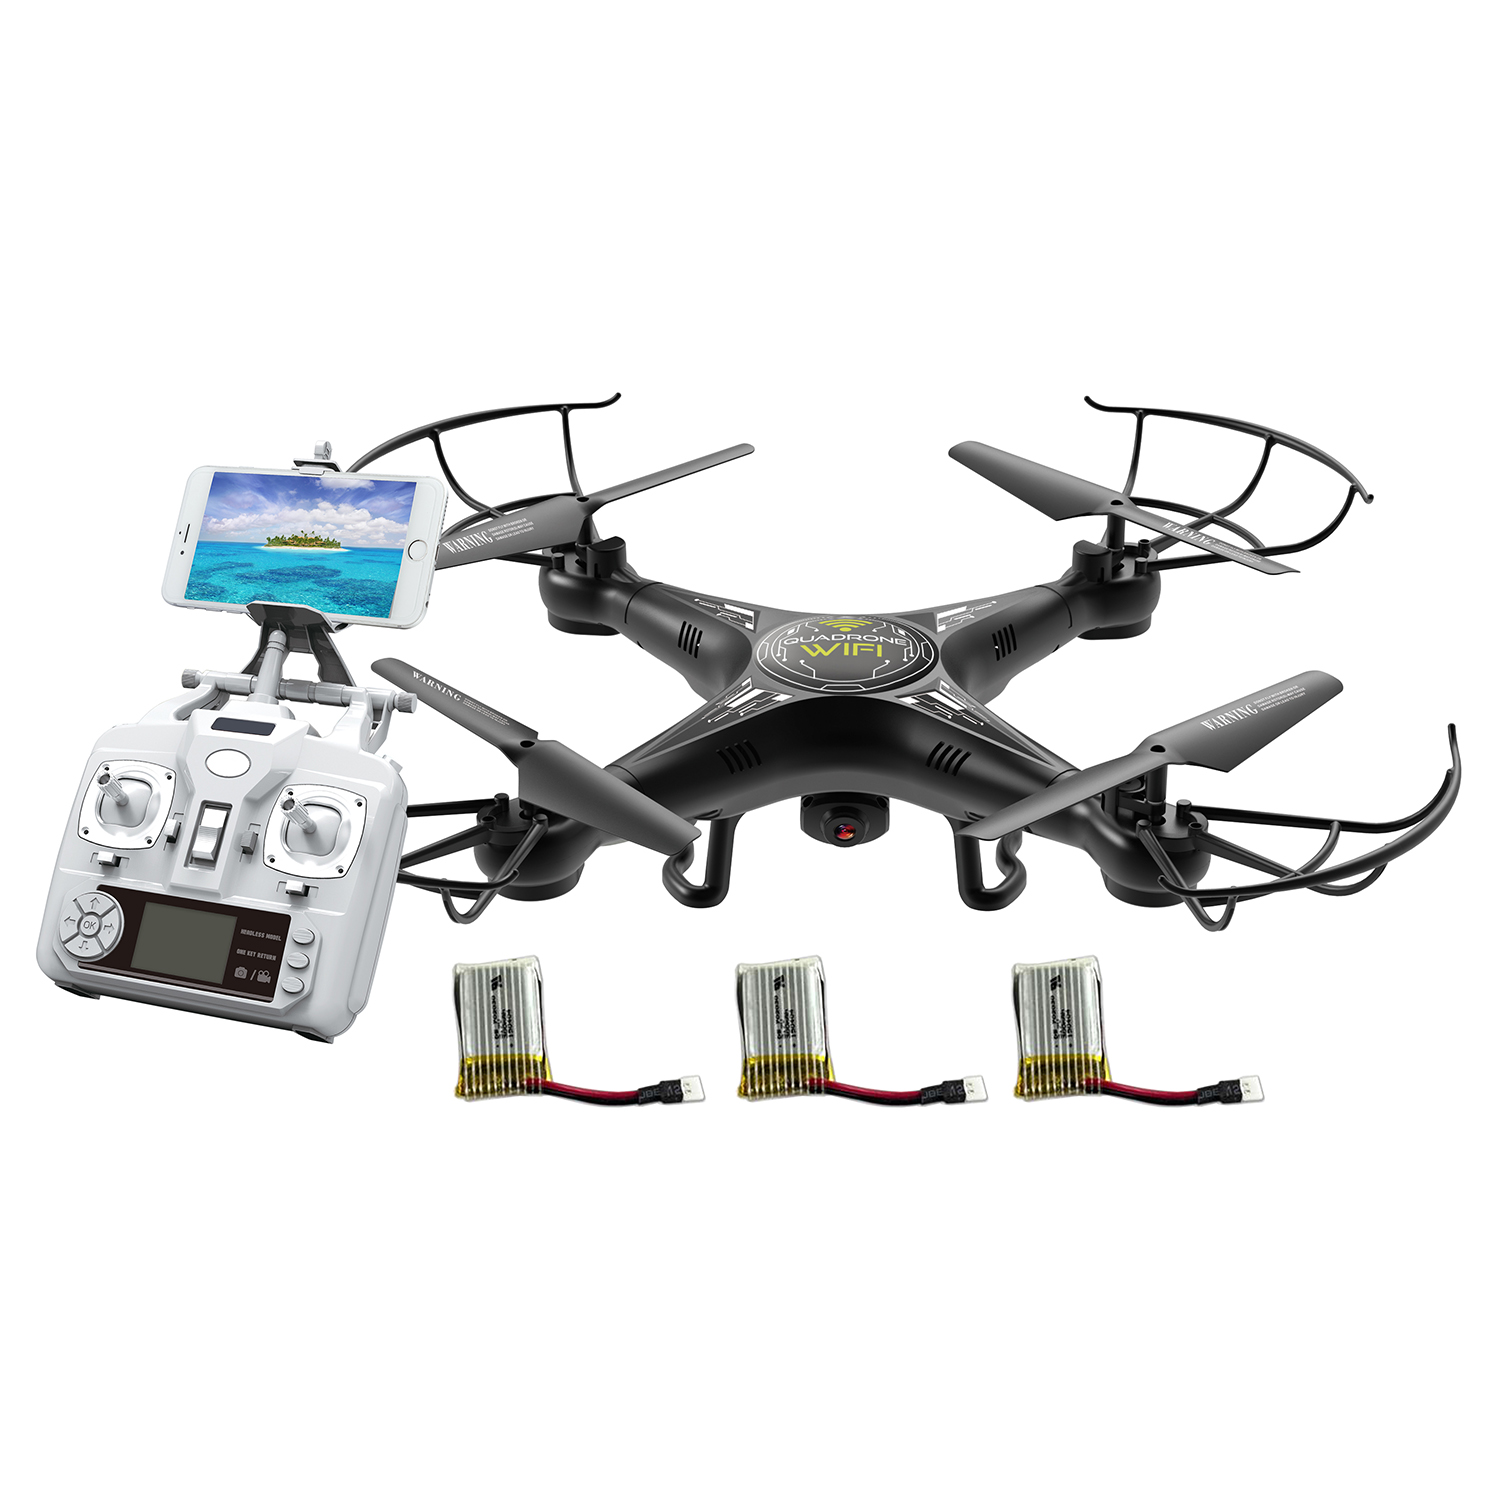 Alta Quadcopter  Wi-Fi RC Drone with FPV Live Stream Camera, Remote Control and 3 Batteries